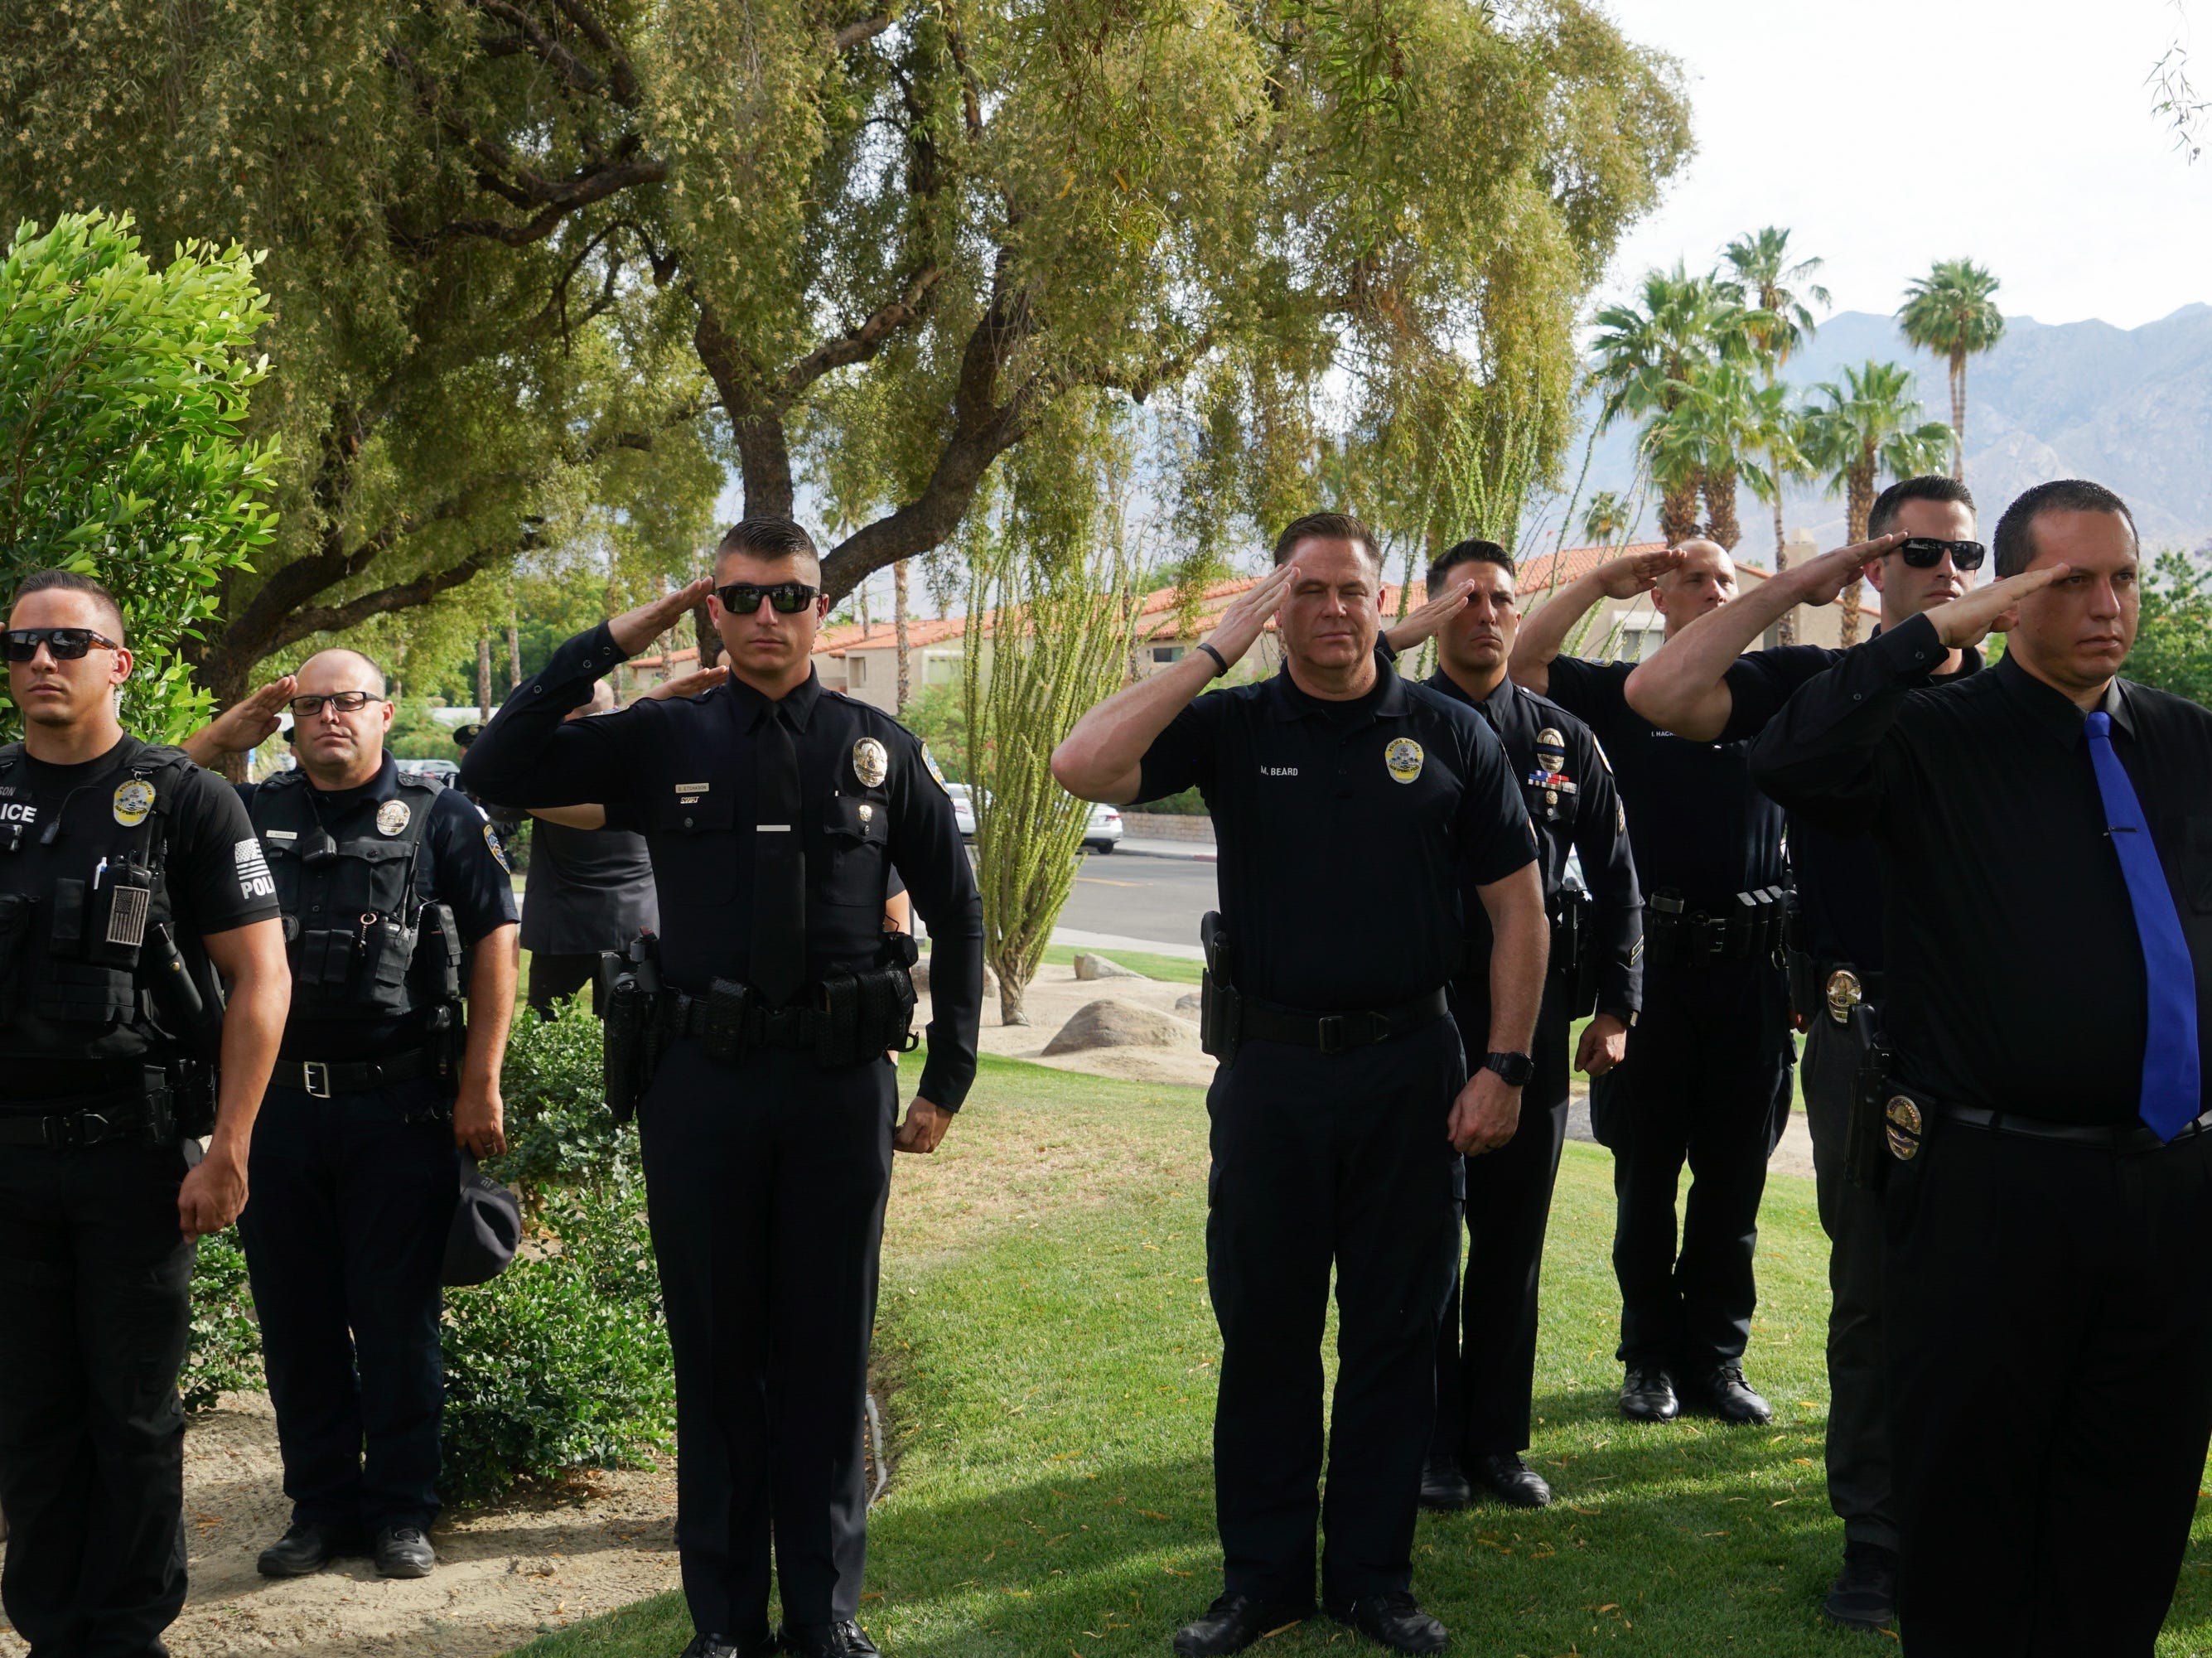 Officers stand for a gun salute during a ceremony honoring fallen Palm Springs police officers are on Peace Officers Memorial Day, Palm Springs, Calif., May 15, 2019.